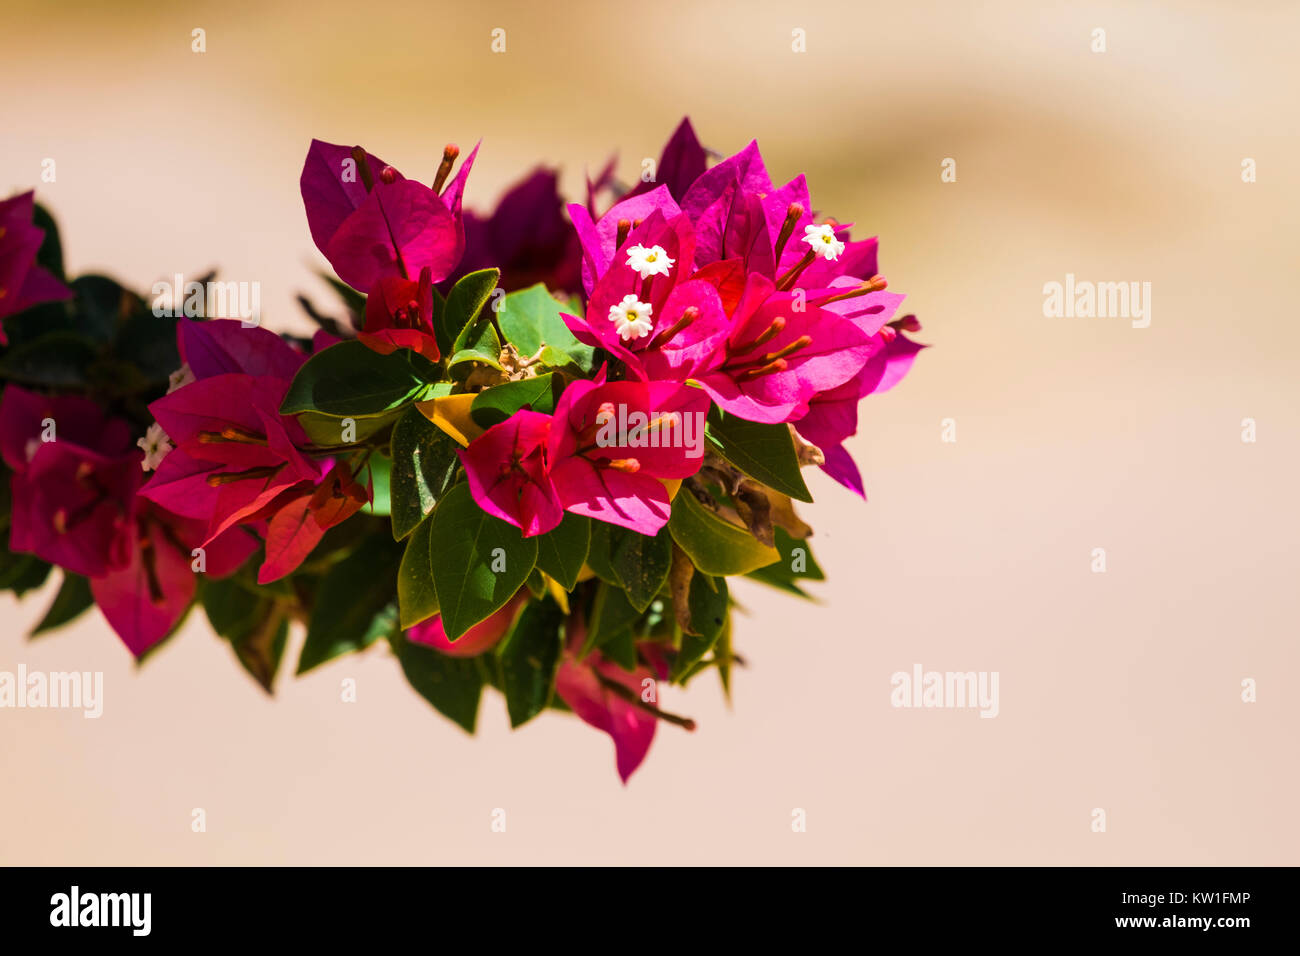 Pink flowers of the evergreen shrub Bougainvillea (Bougainvillea glabra) - Stock Image